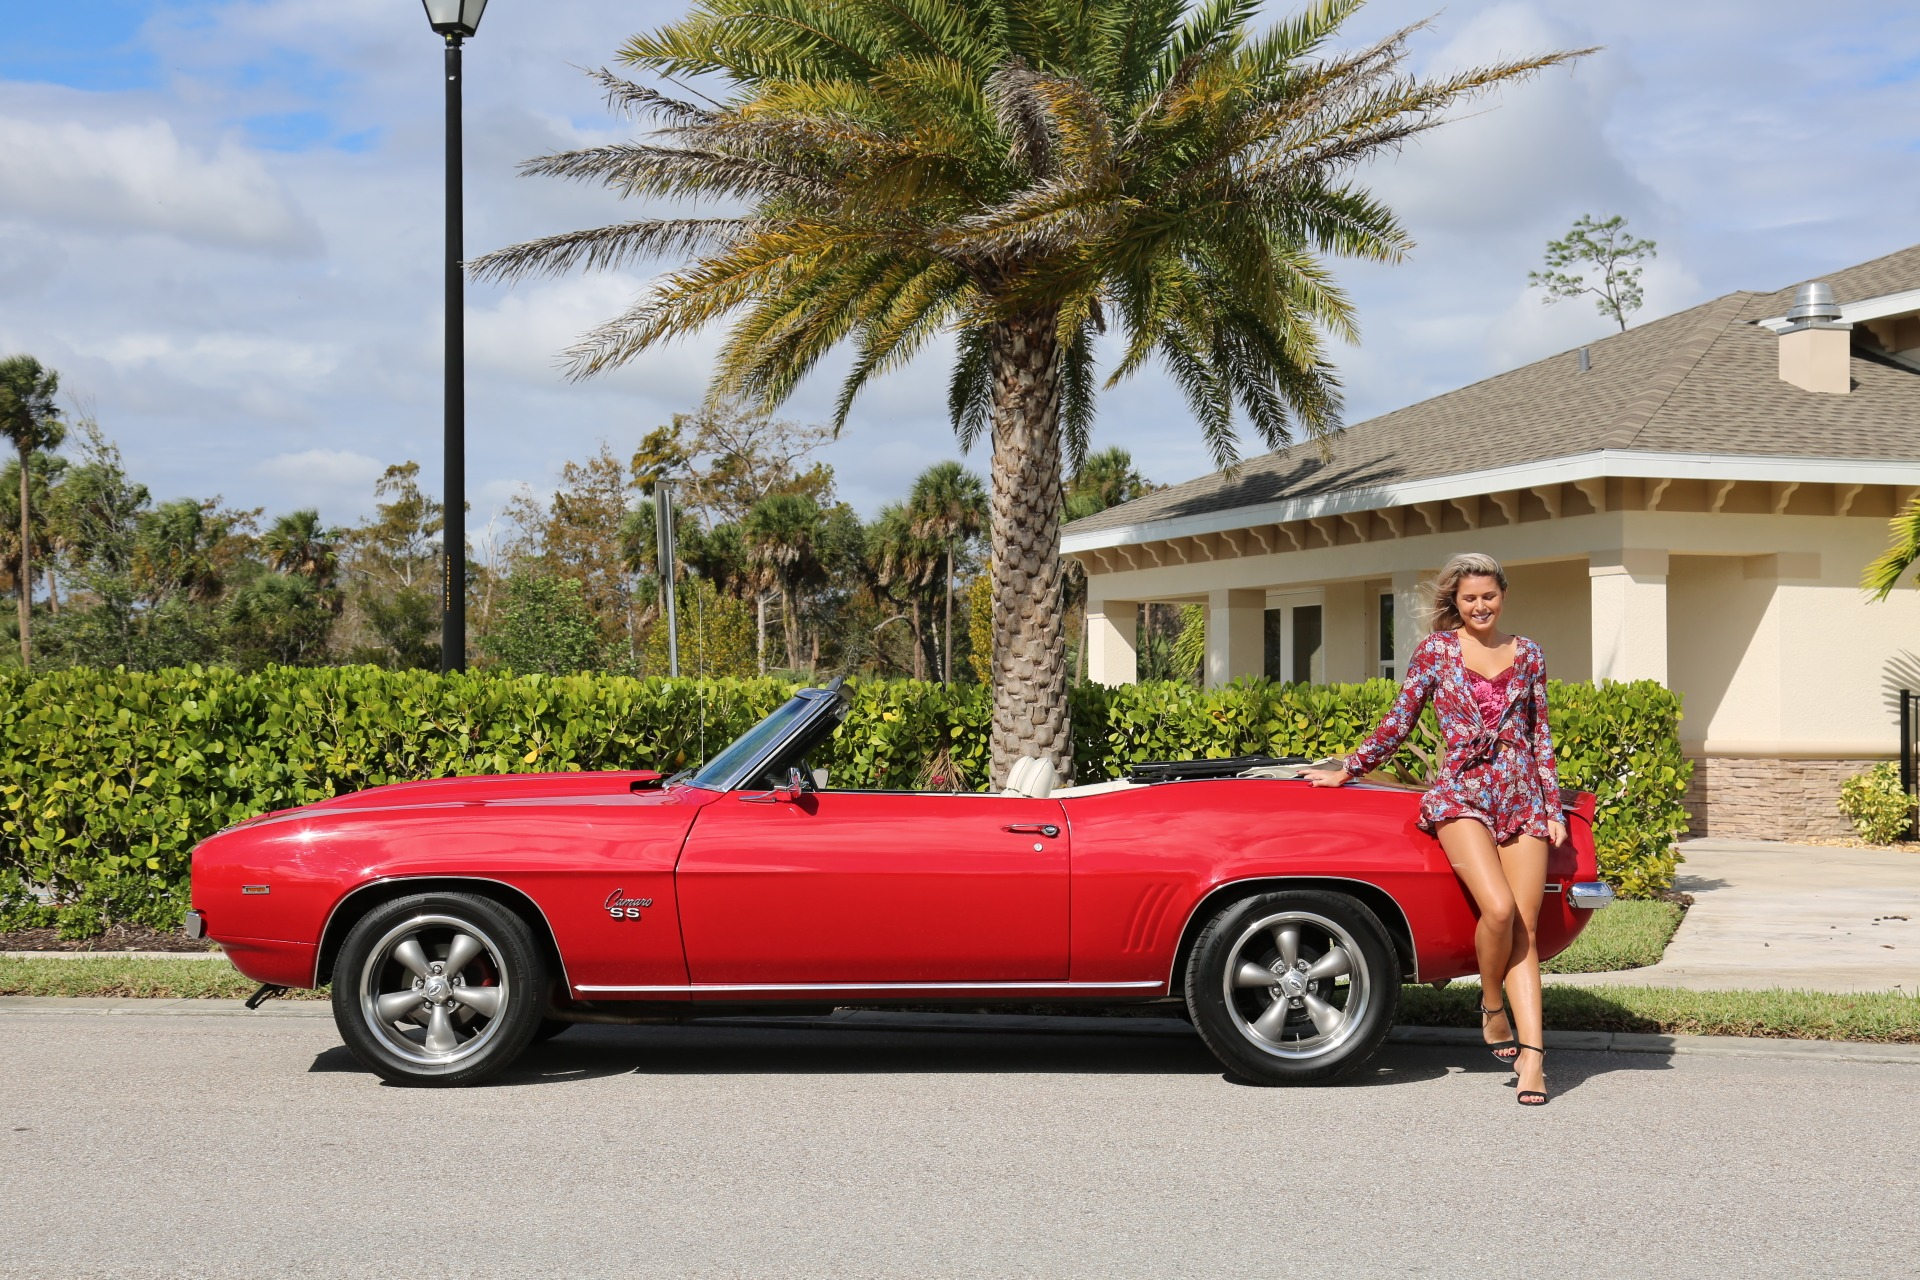 Used 1969 Chevy Camaro Convertible V8 Auto 12 Bolt Rear for sale Sold at Muscle Cars for Sale Inc. in Fort Myers FL 33912 3